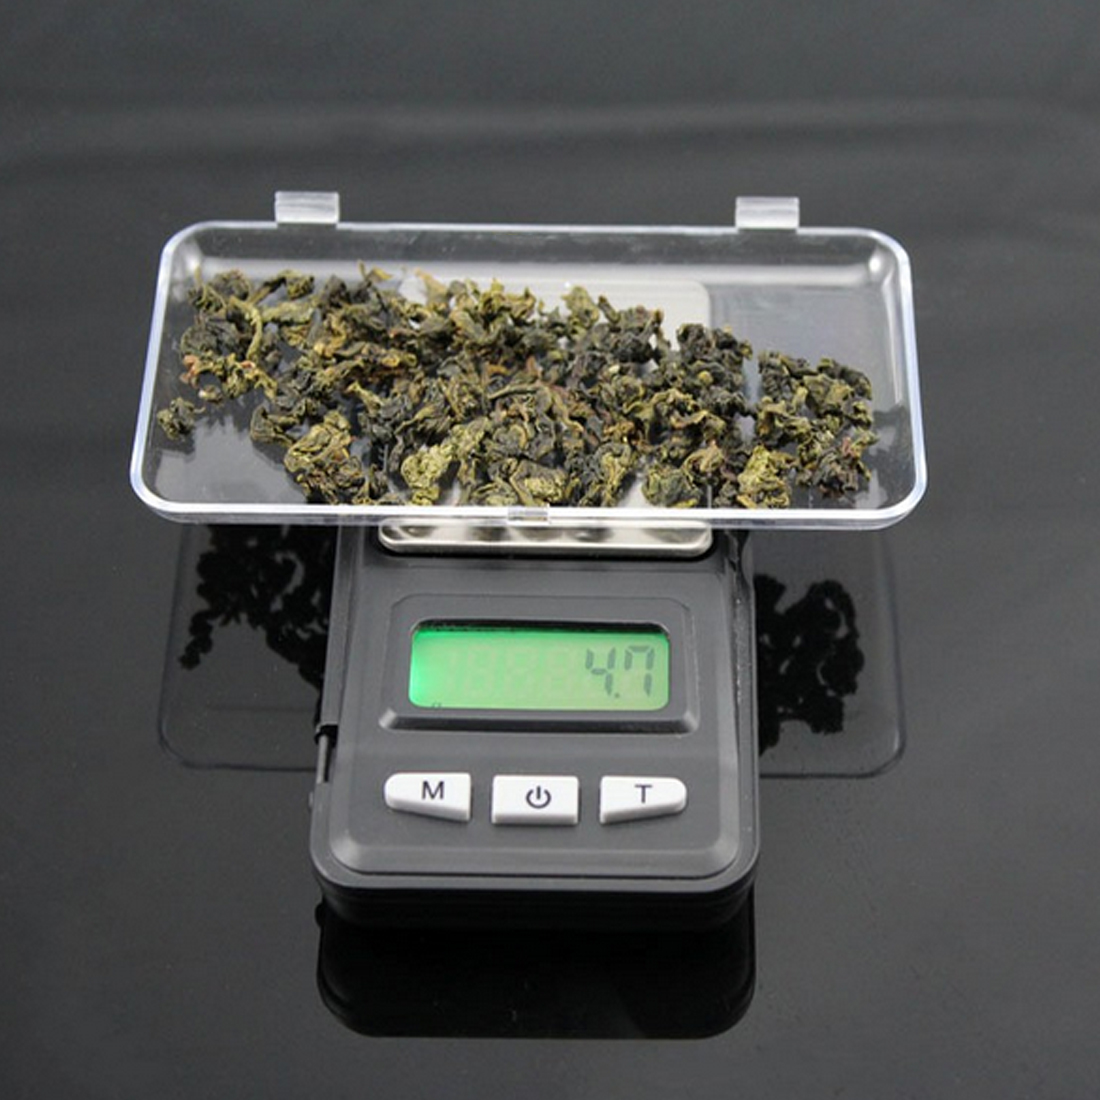 1pc 200g 0.01g Pocket Digital Scale Mini Digital Scale Tool Jewelry Gold Balance Weight Gram Green Back-light LCD Display